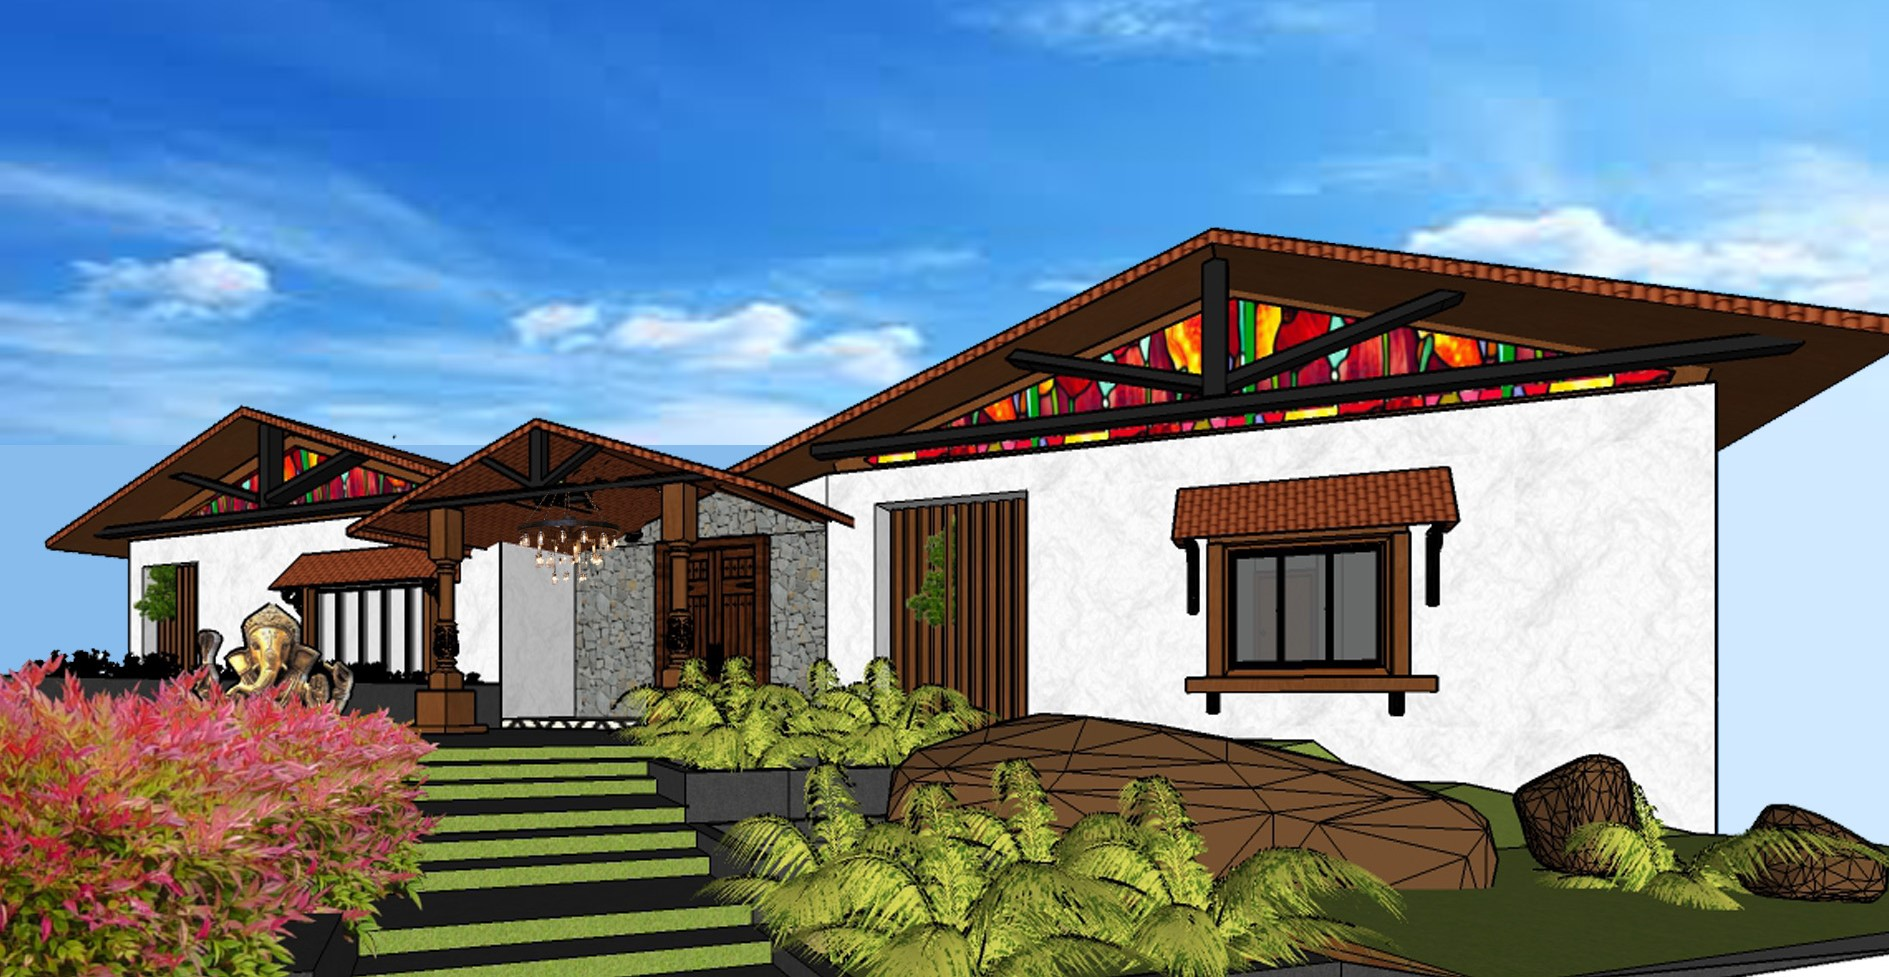 Resort Villa layout 2